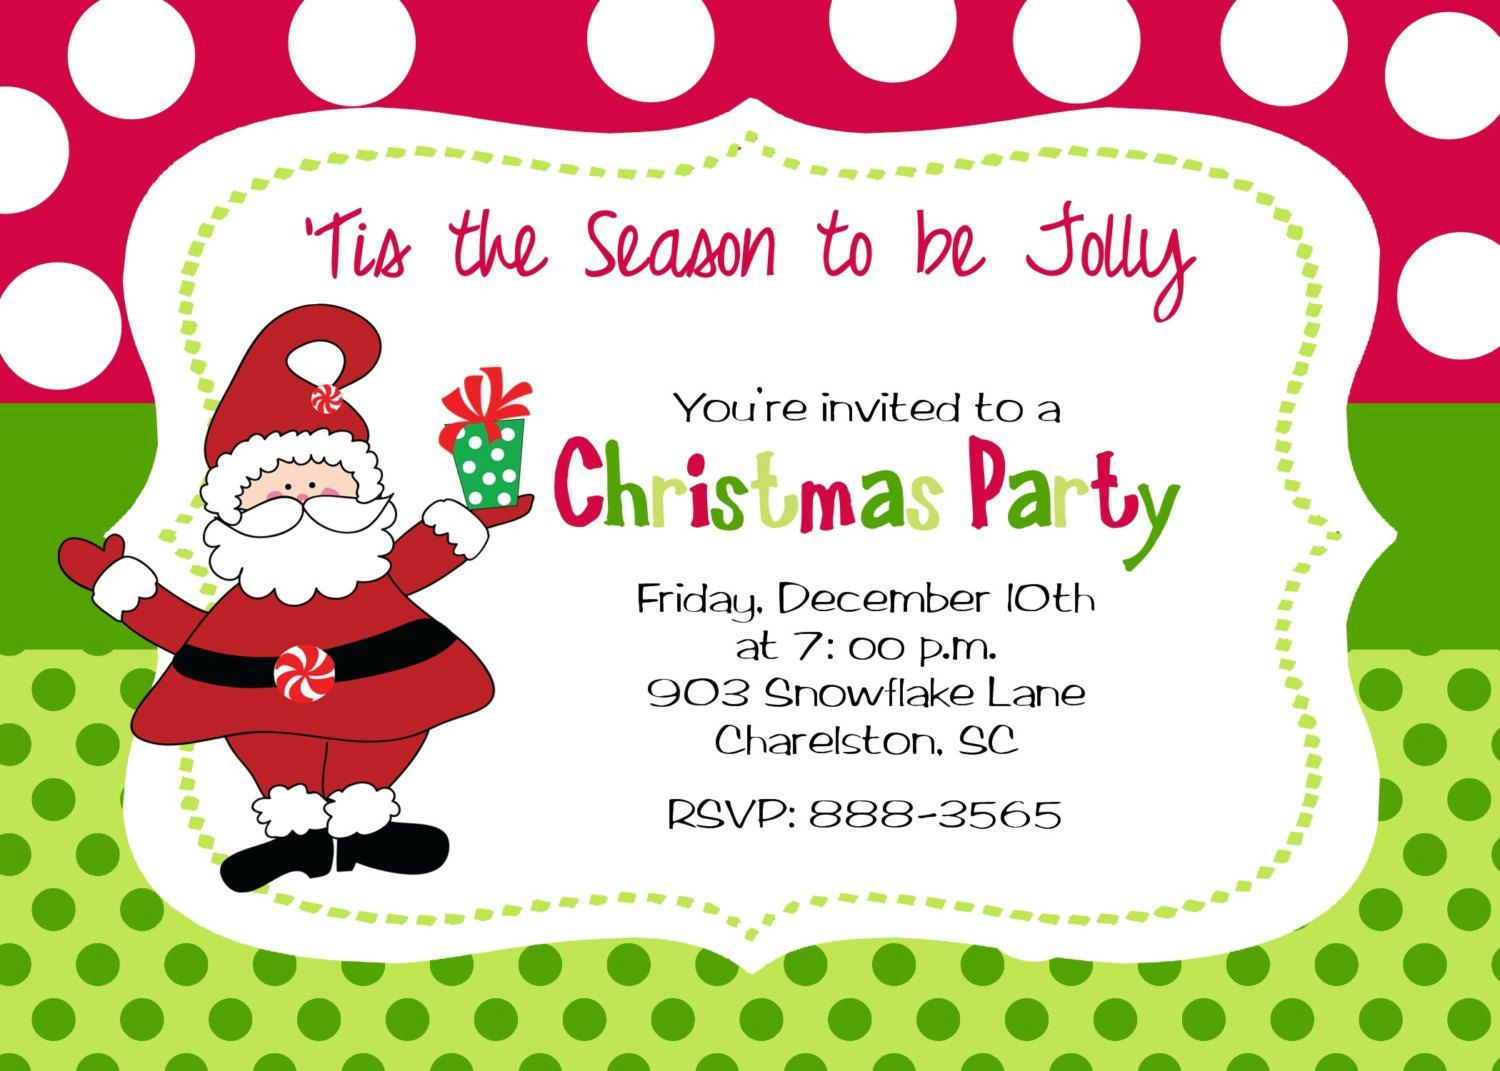 Christmas Party Invitation By Stickerchic On Etsy – Invitations to Christmas Party